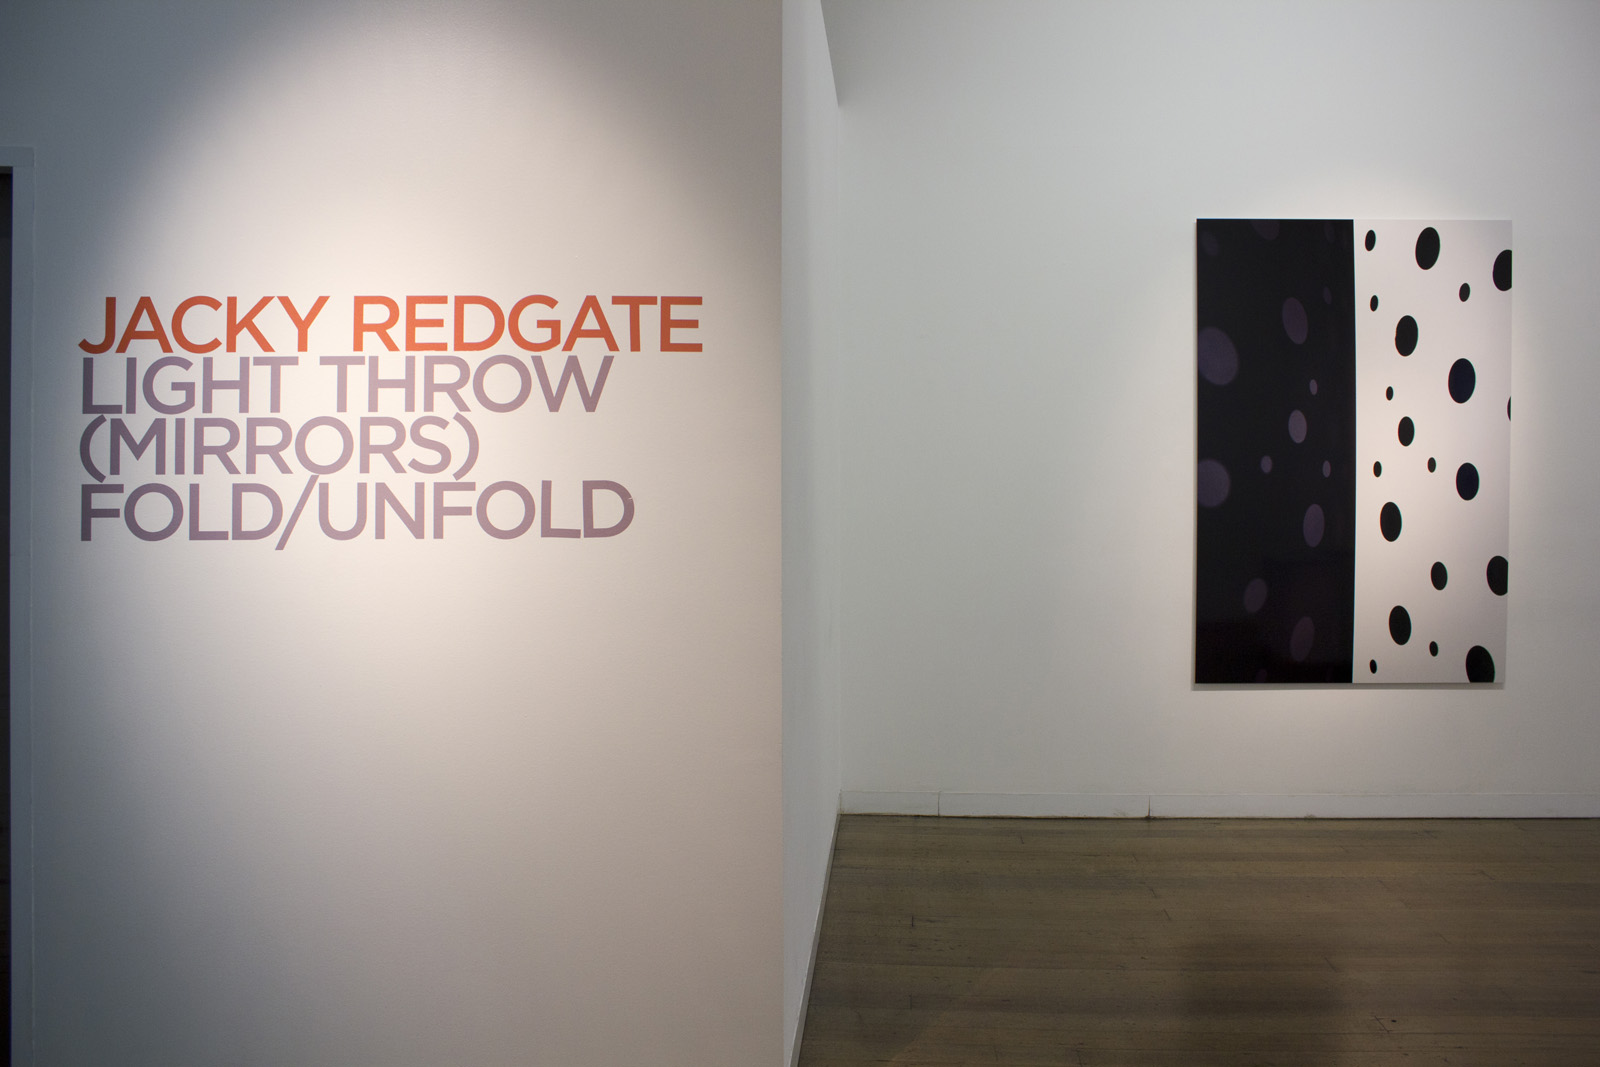 JACKY REDGATE   Light Throw (Mirrors) Fold/Unfold  2019 Install view